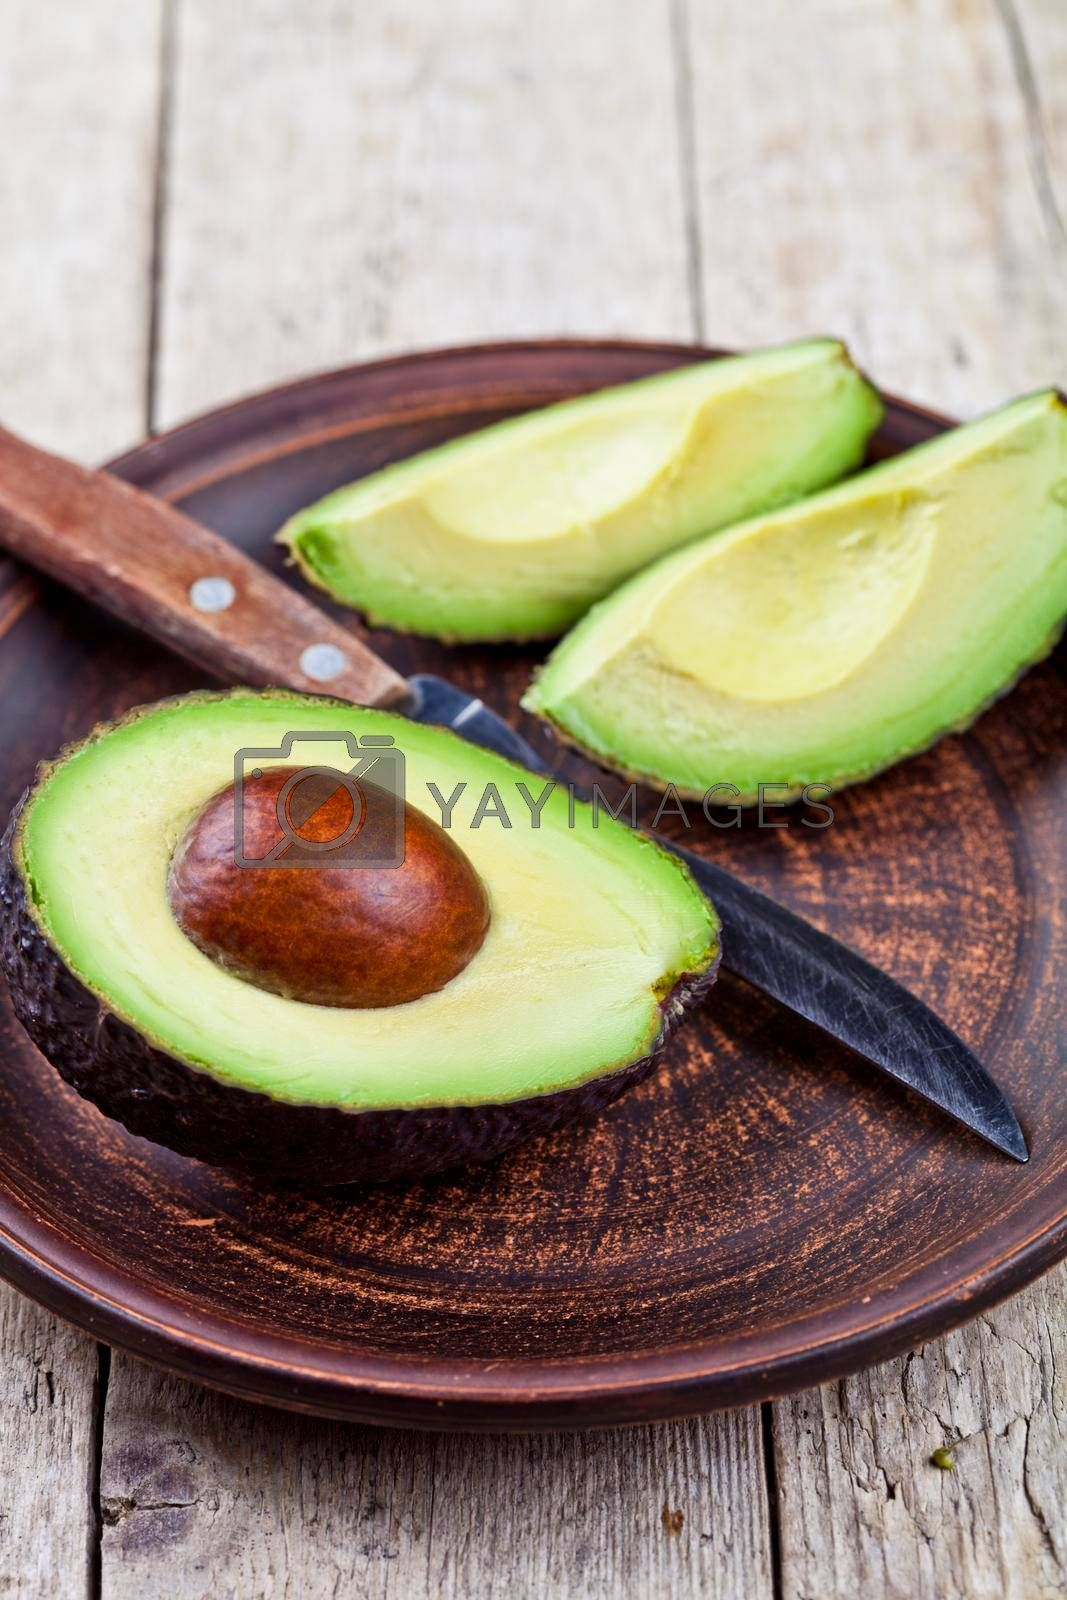 Fresh organic avocado on ceramic plate and knife on rustic wooden table background. Healthy food concept.